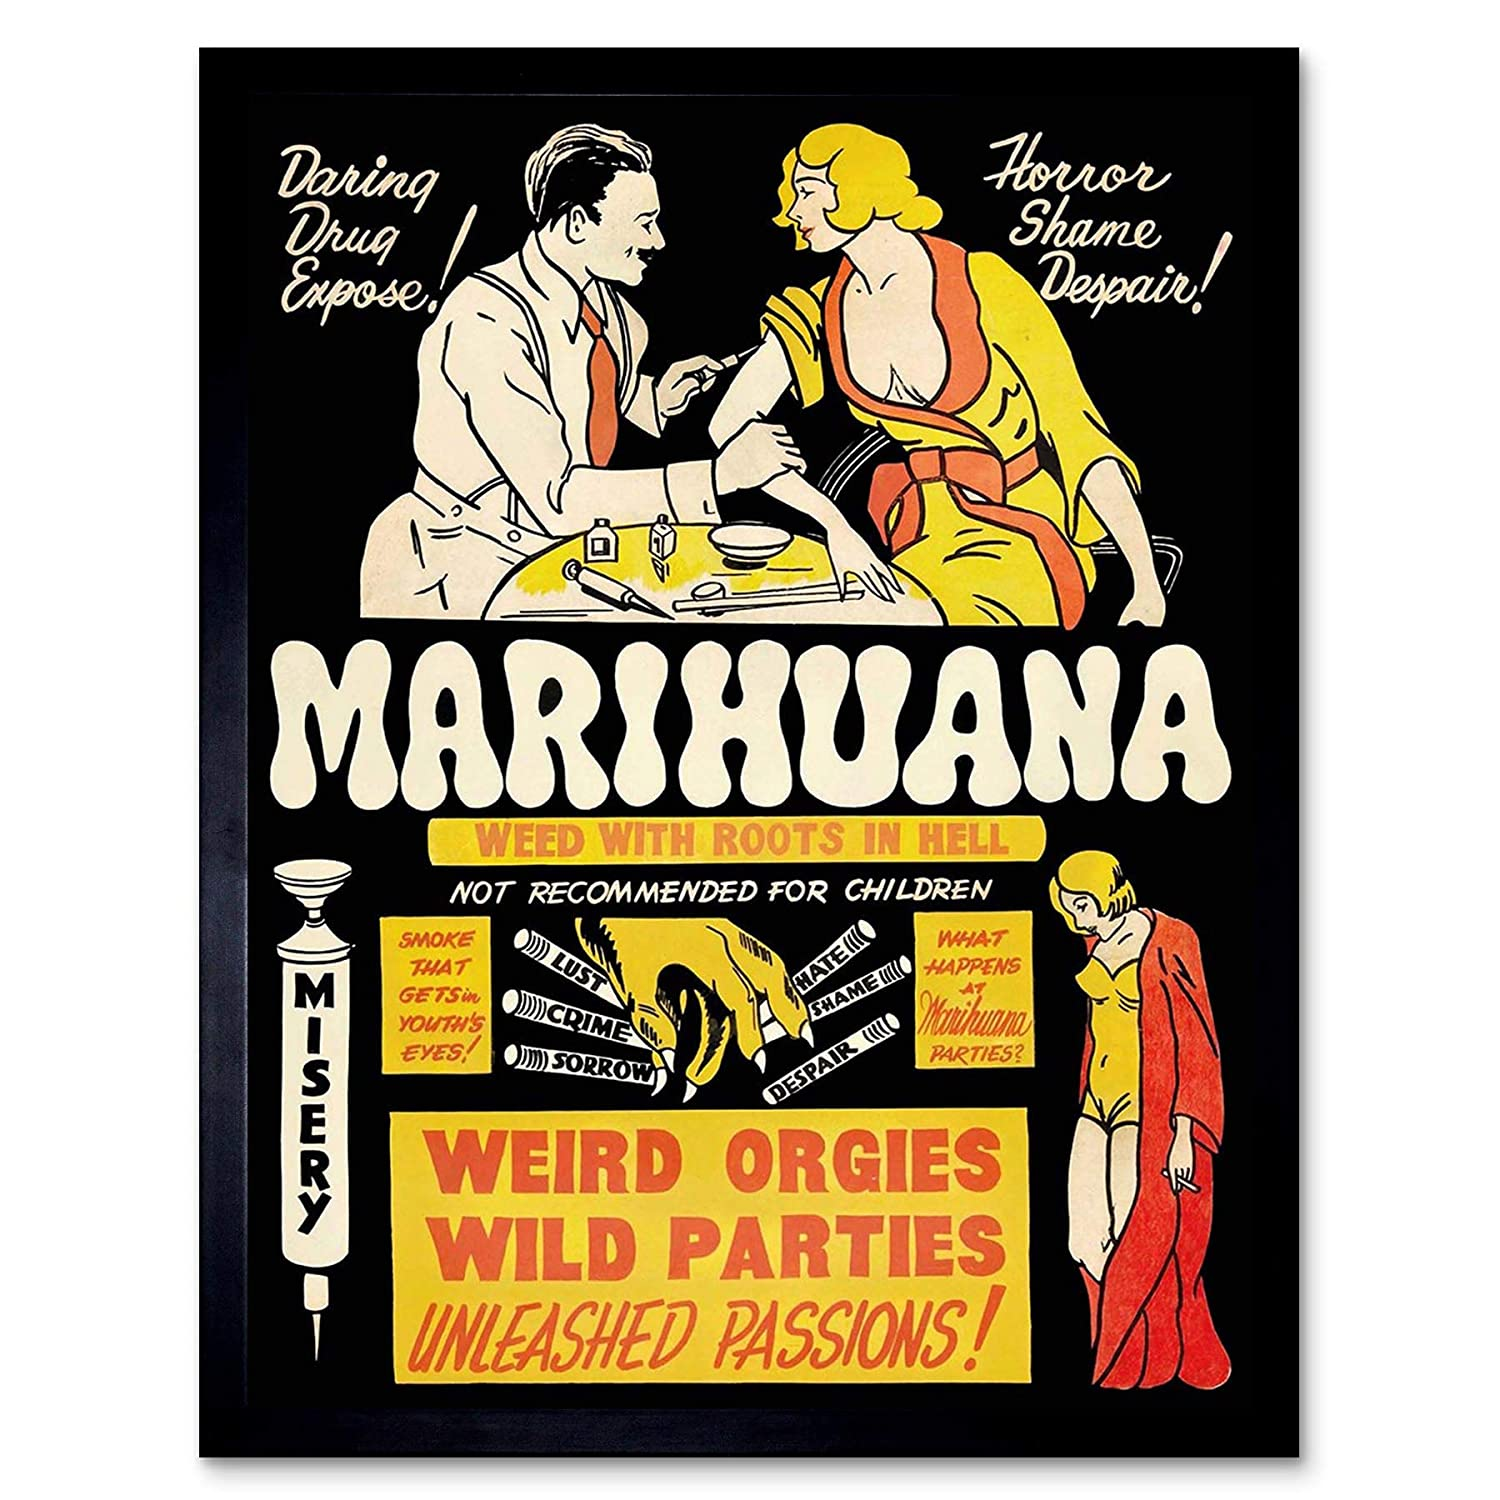 7e05fc7376b Amazon.com  Wee Blue Coo Propaganda Political Drug Abuse Marijuana Weed  Weird Unframed Wall Art Print Poster Home Decor Premium  Home   Kitchen